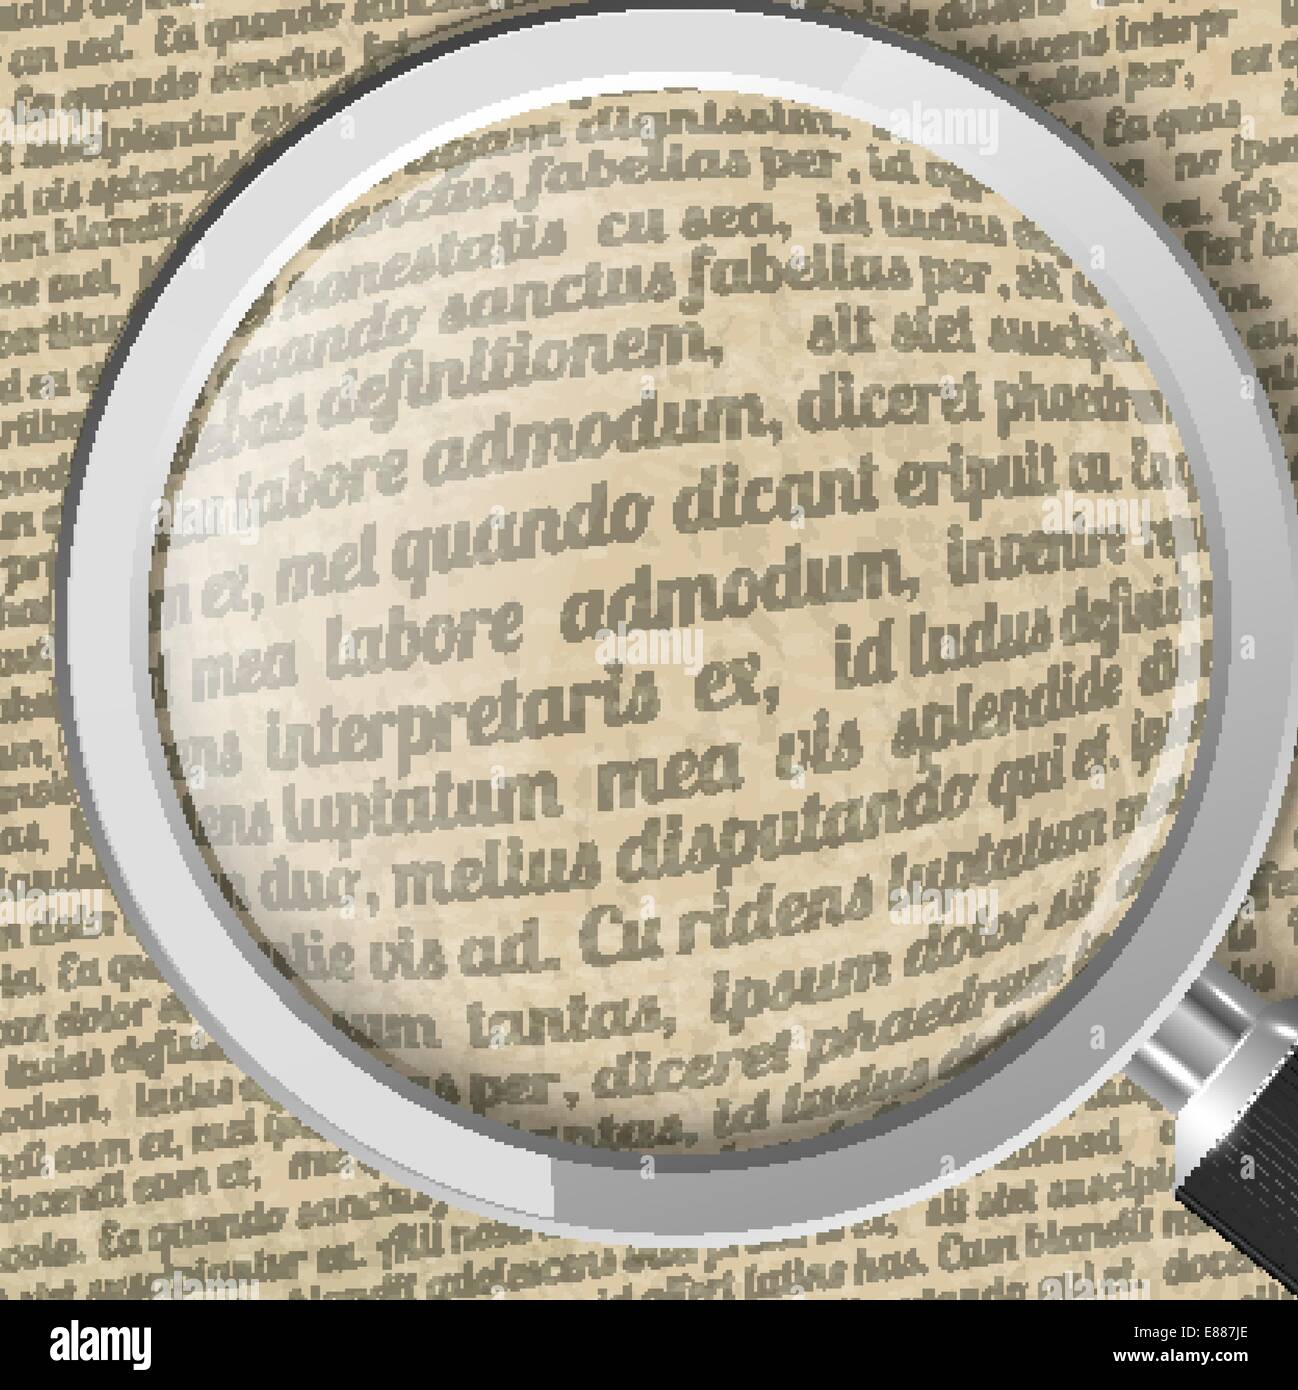 Magnifying glass and old sheet of paper with text - Stock Vector